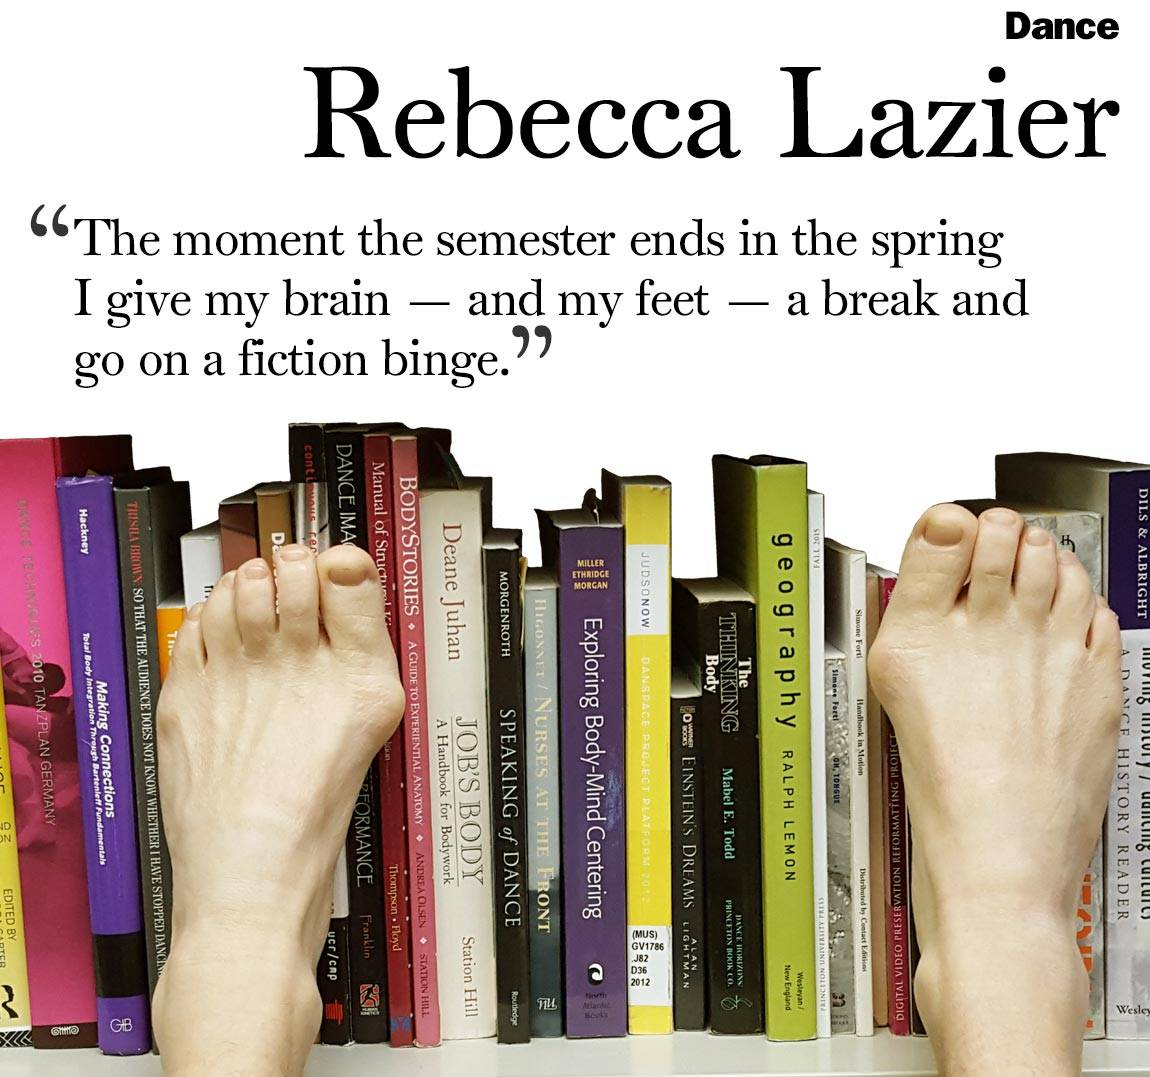 "Faculty Bookshelves 2016 ""Dance; Rebecca Lazier; 'The moment the semester ends in the spring I give my brain — and my feet — a break and go on a fiction binge.'"""